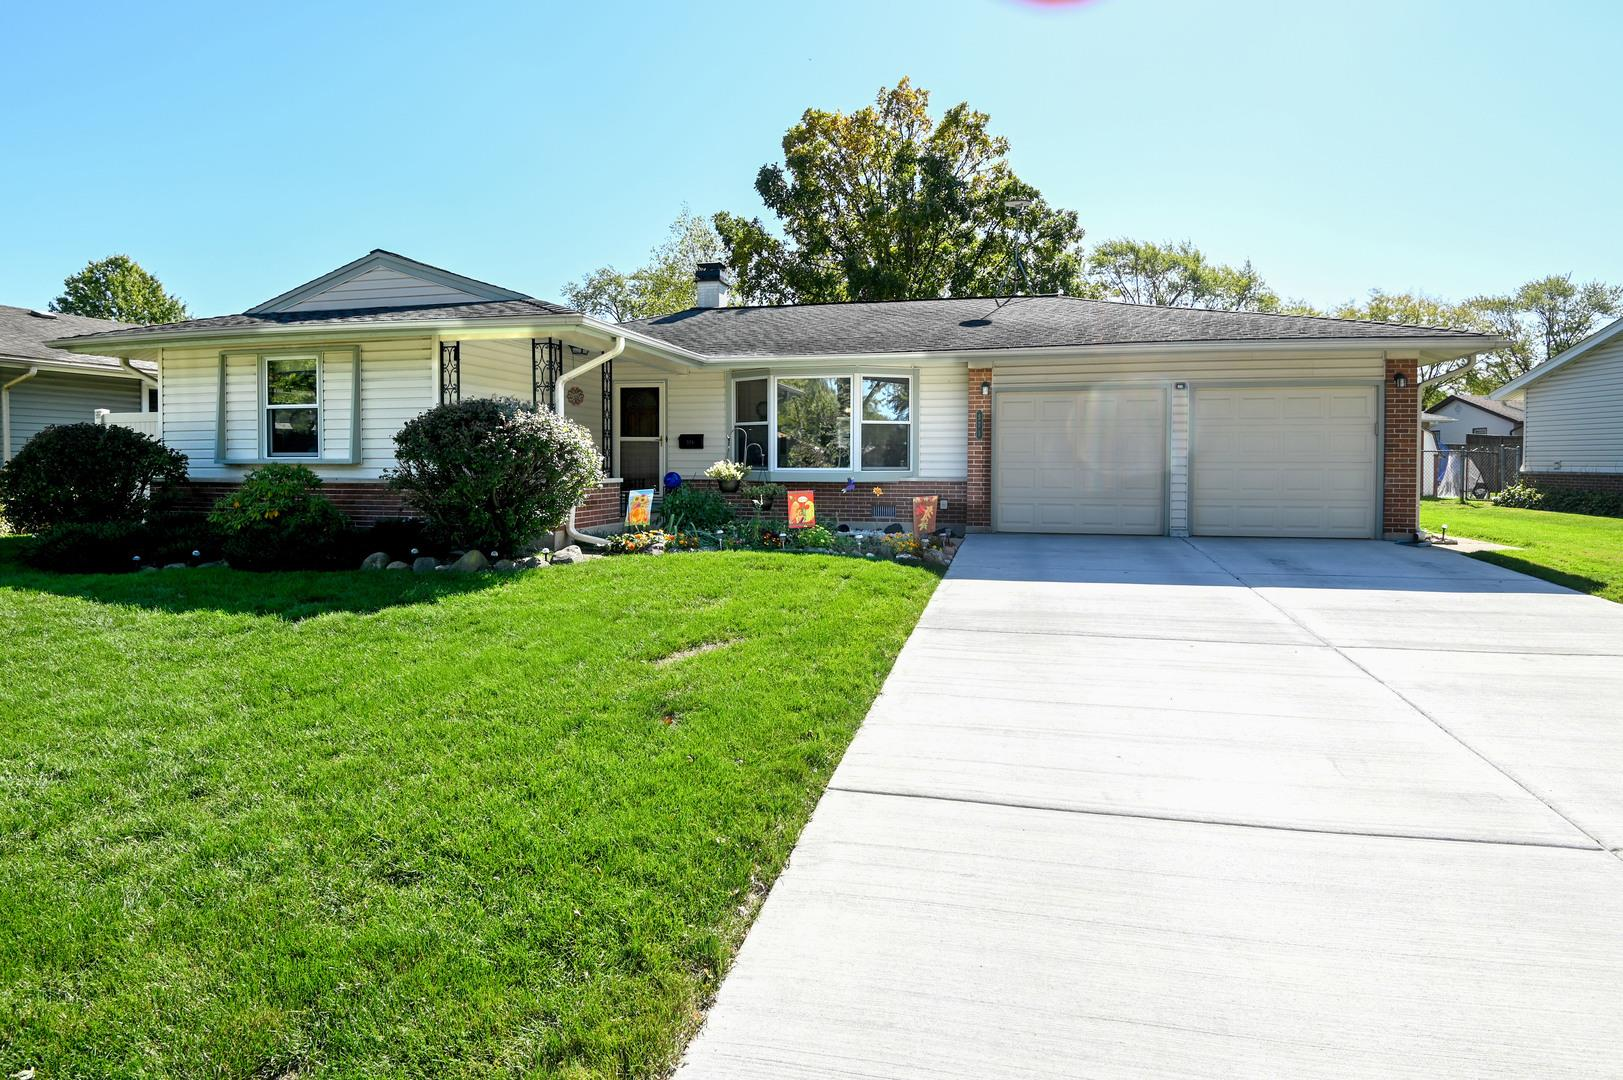 571 Clearmont Drive, Elk Grove Village, IL 60007 - #: 10896112